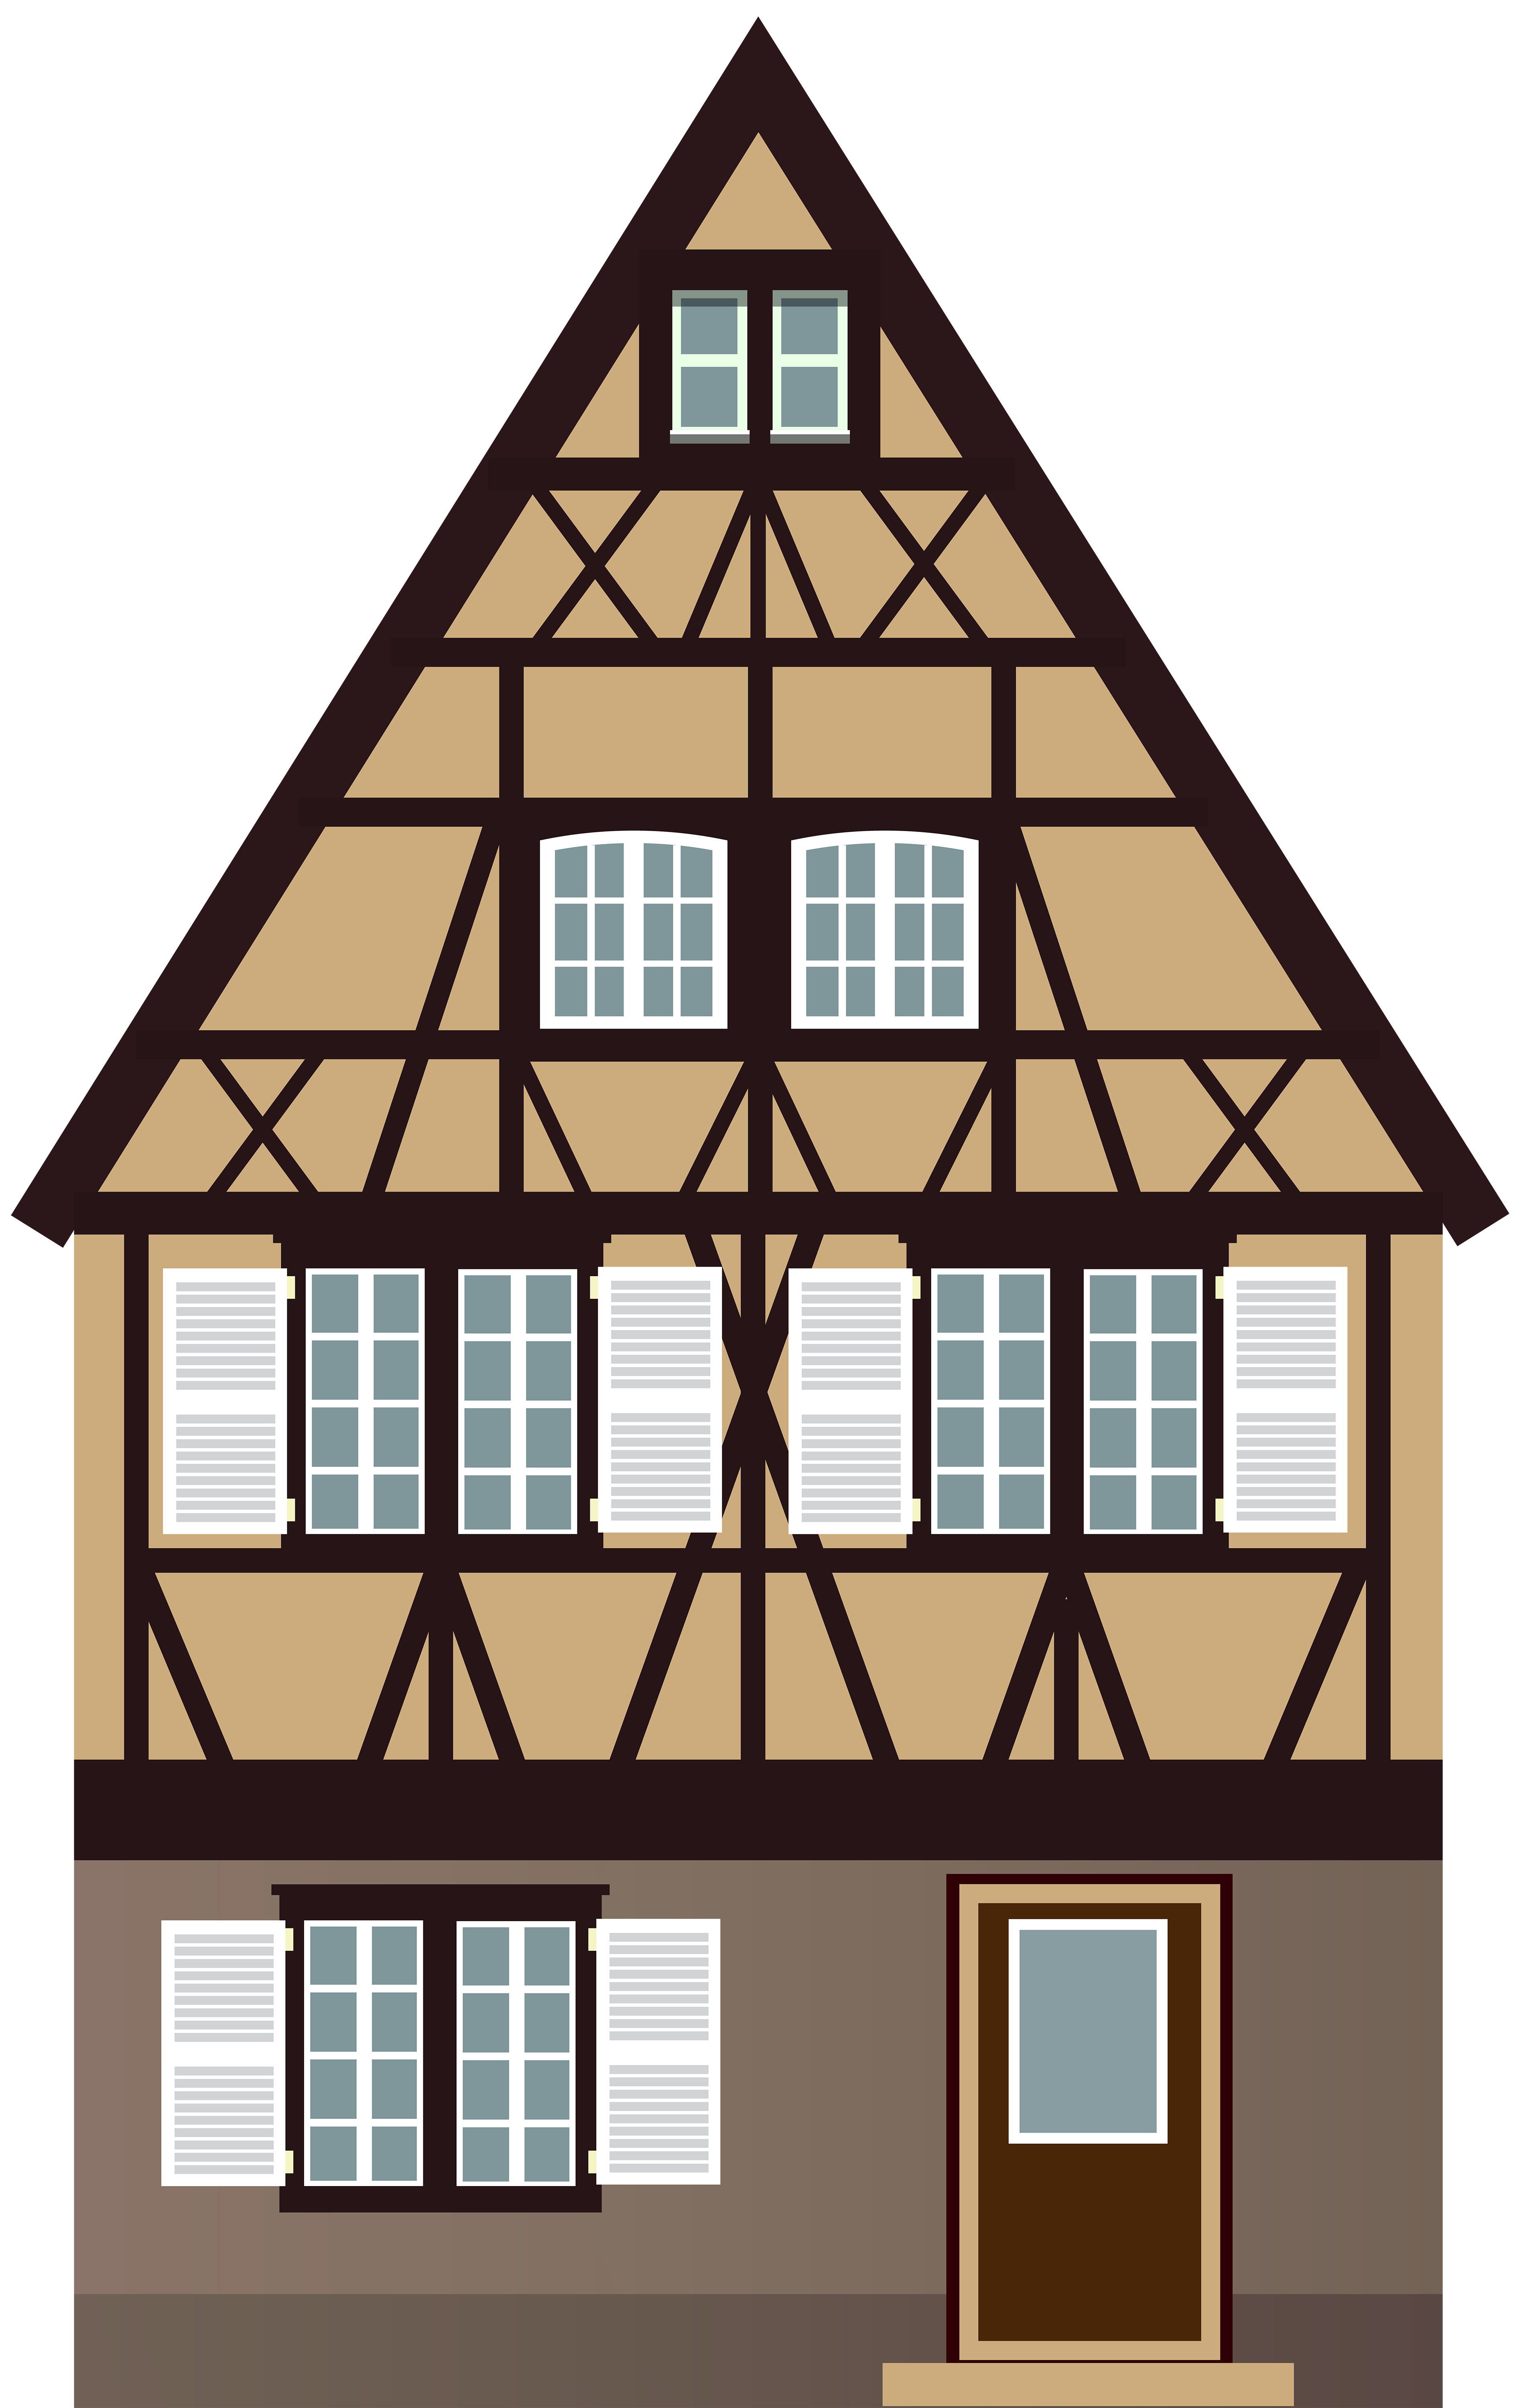 Clock clipart house. Brown png clip art